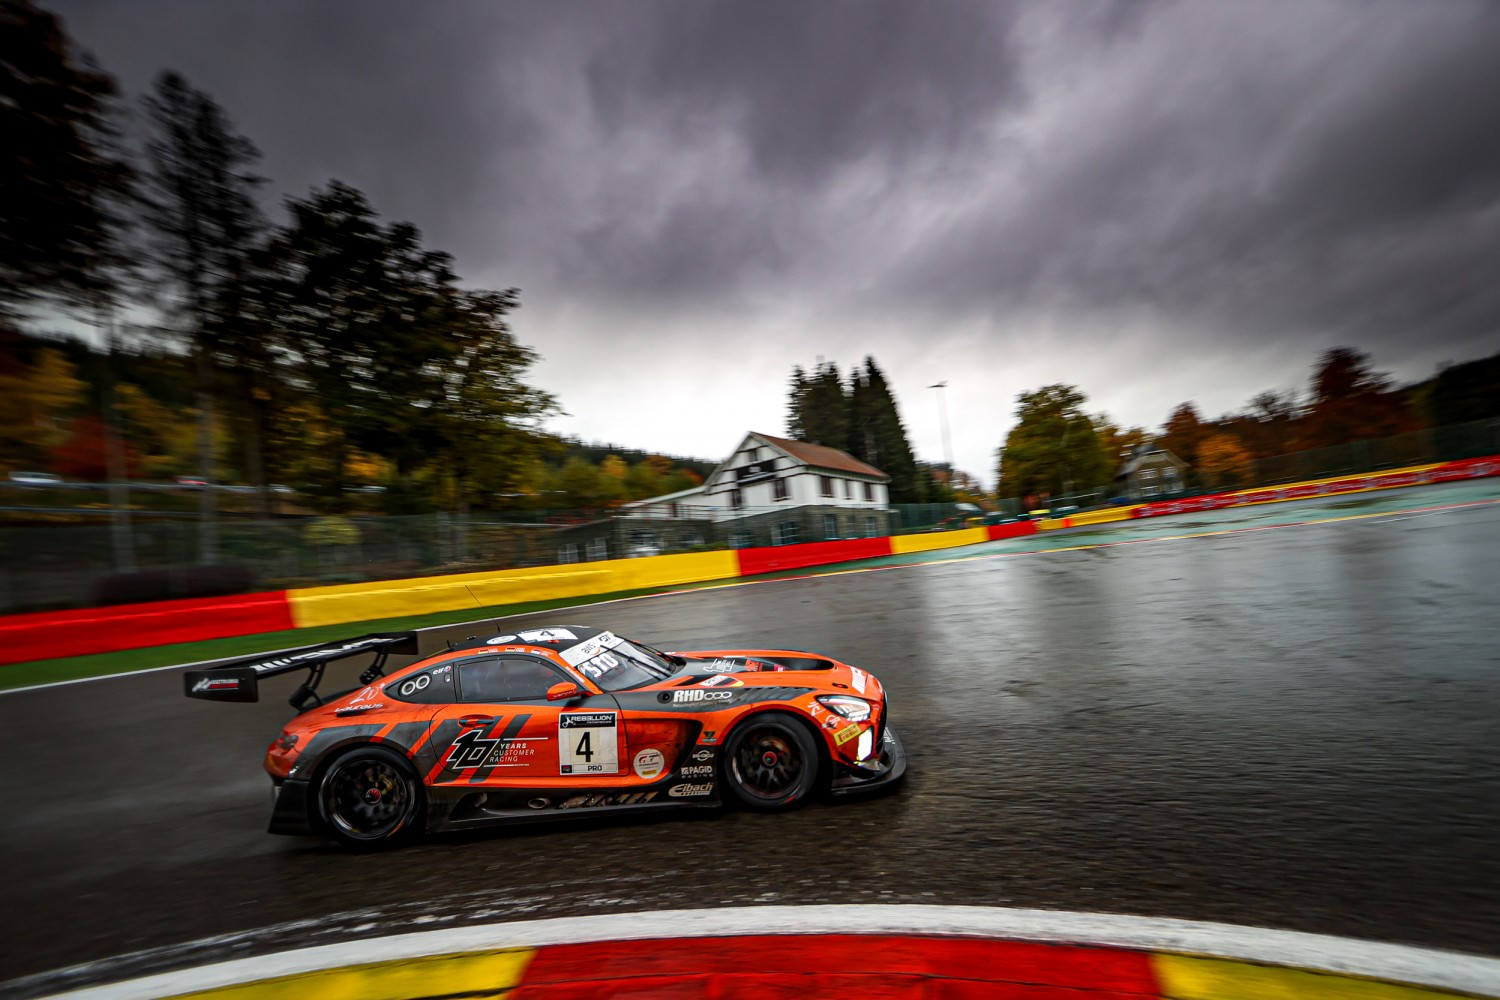 Mercedes-AMG names strengthened driver roster, targets Total 24 Hours of Spa glory